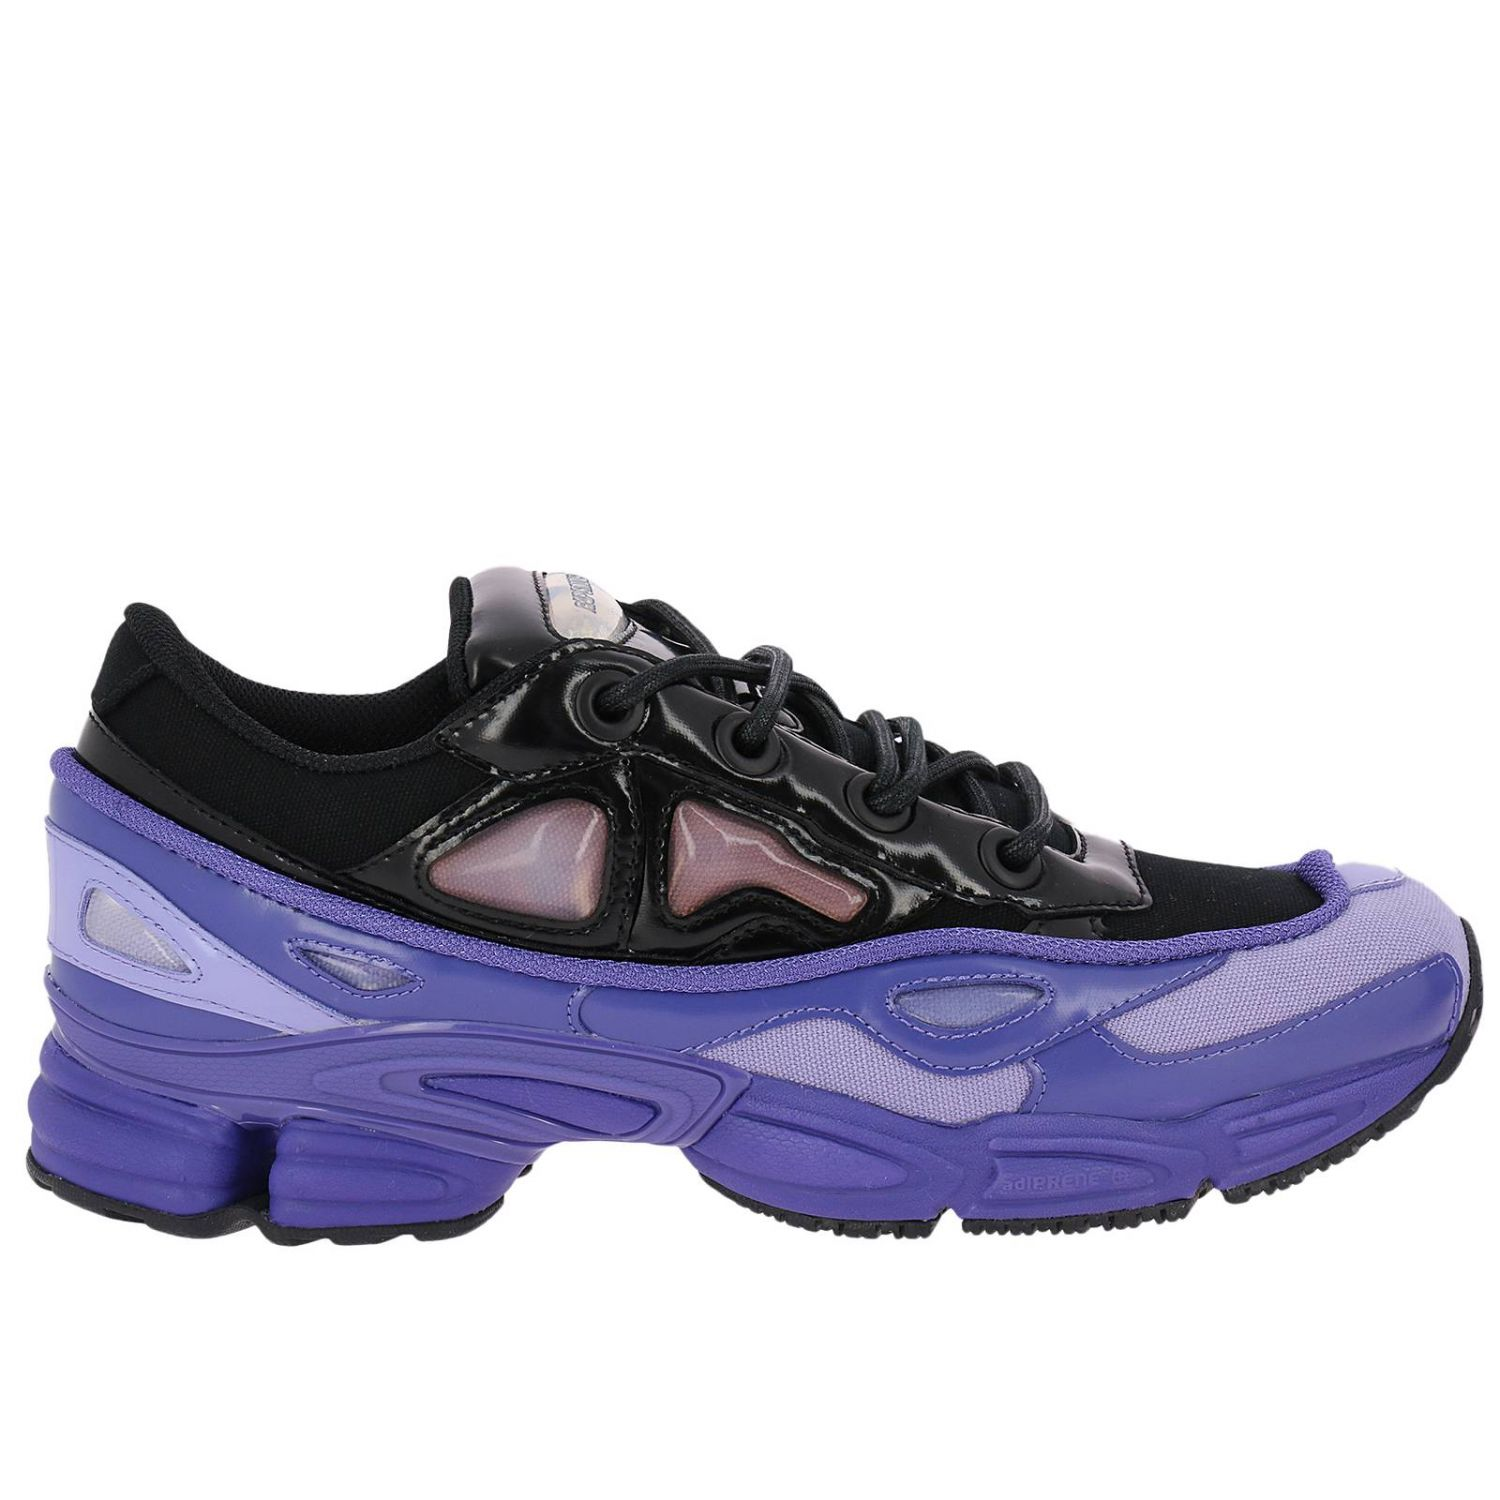 Sneakers Adidas Shoes By Raf Simons Sport Style Rs Ozweego Iii Sneakers 8373941